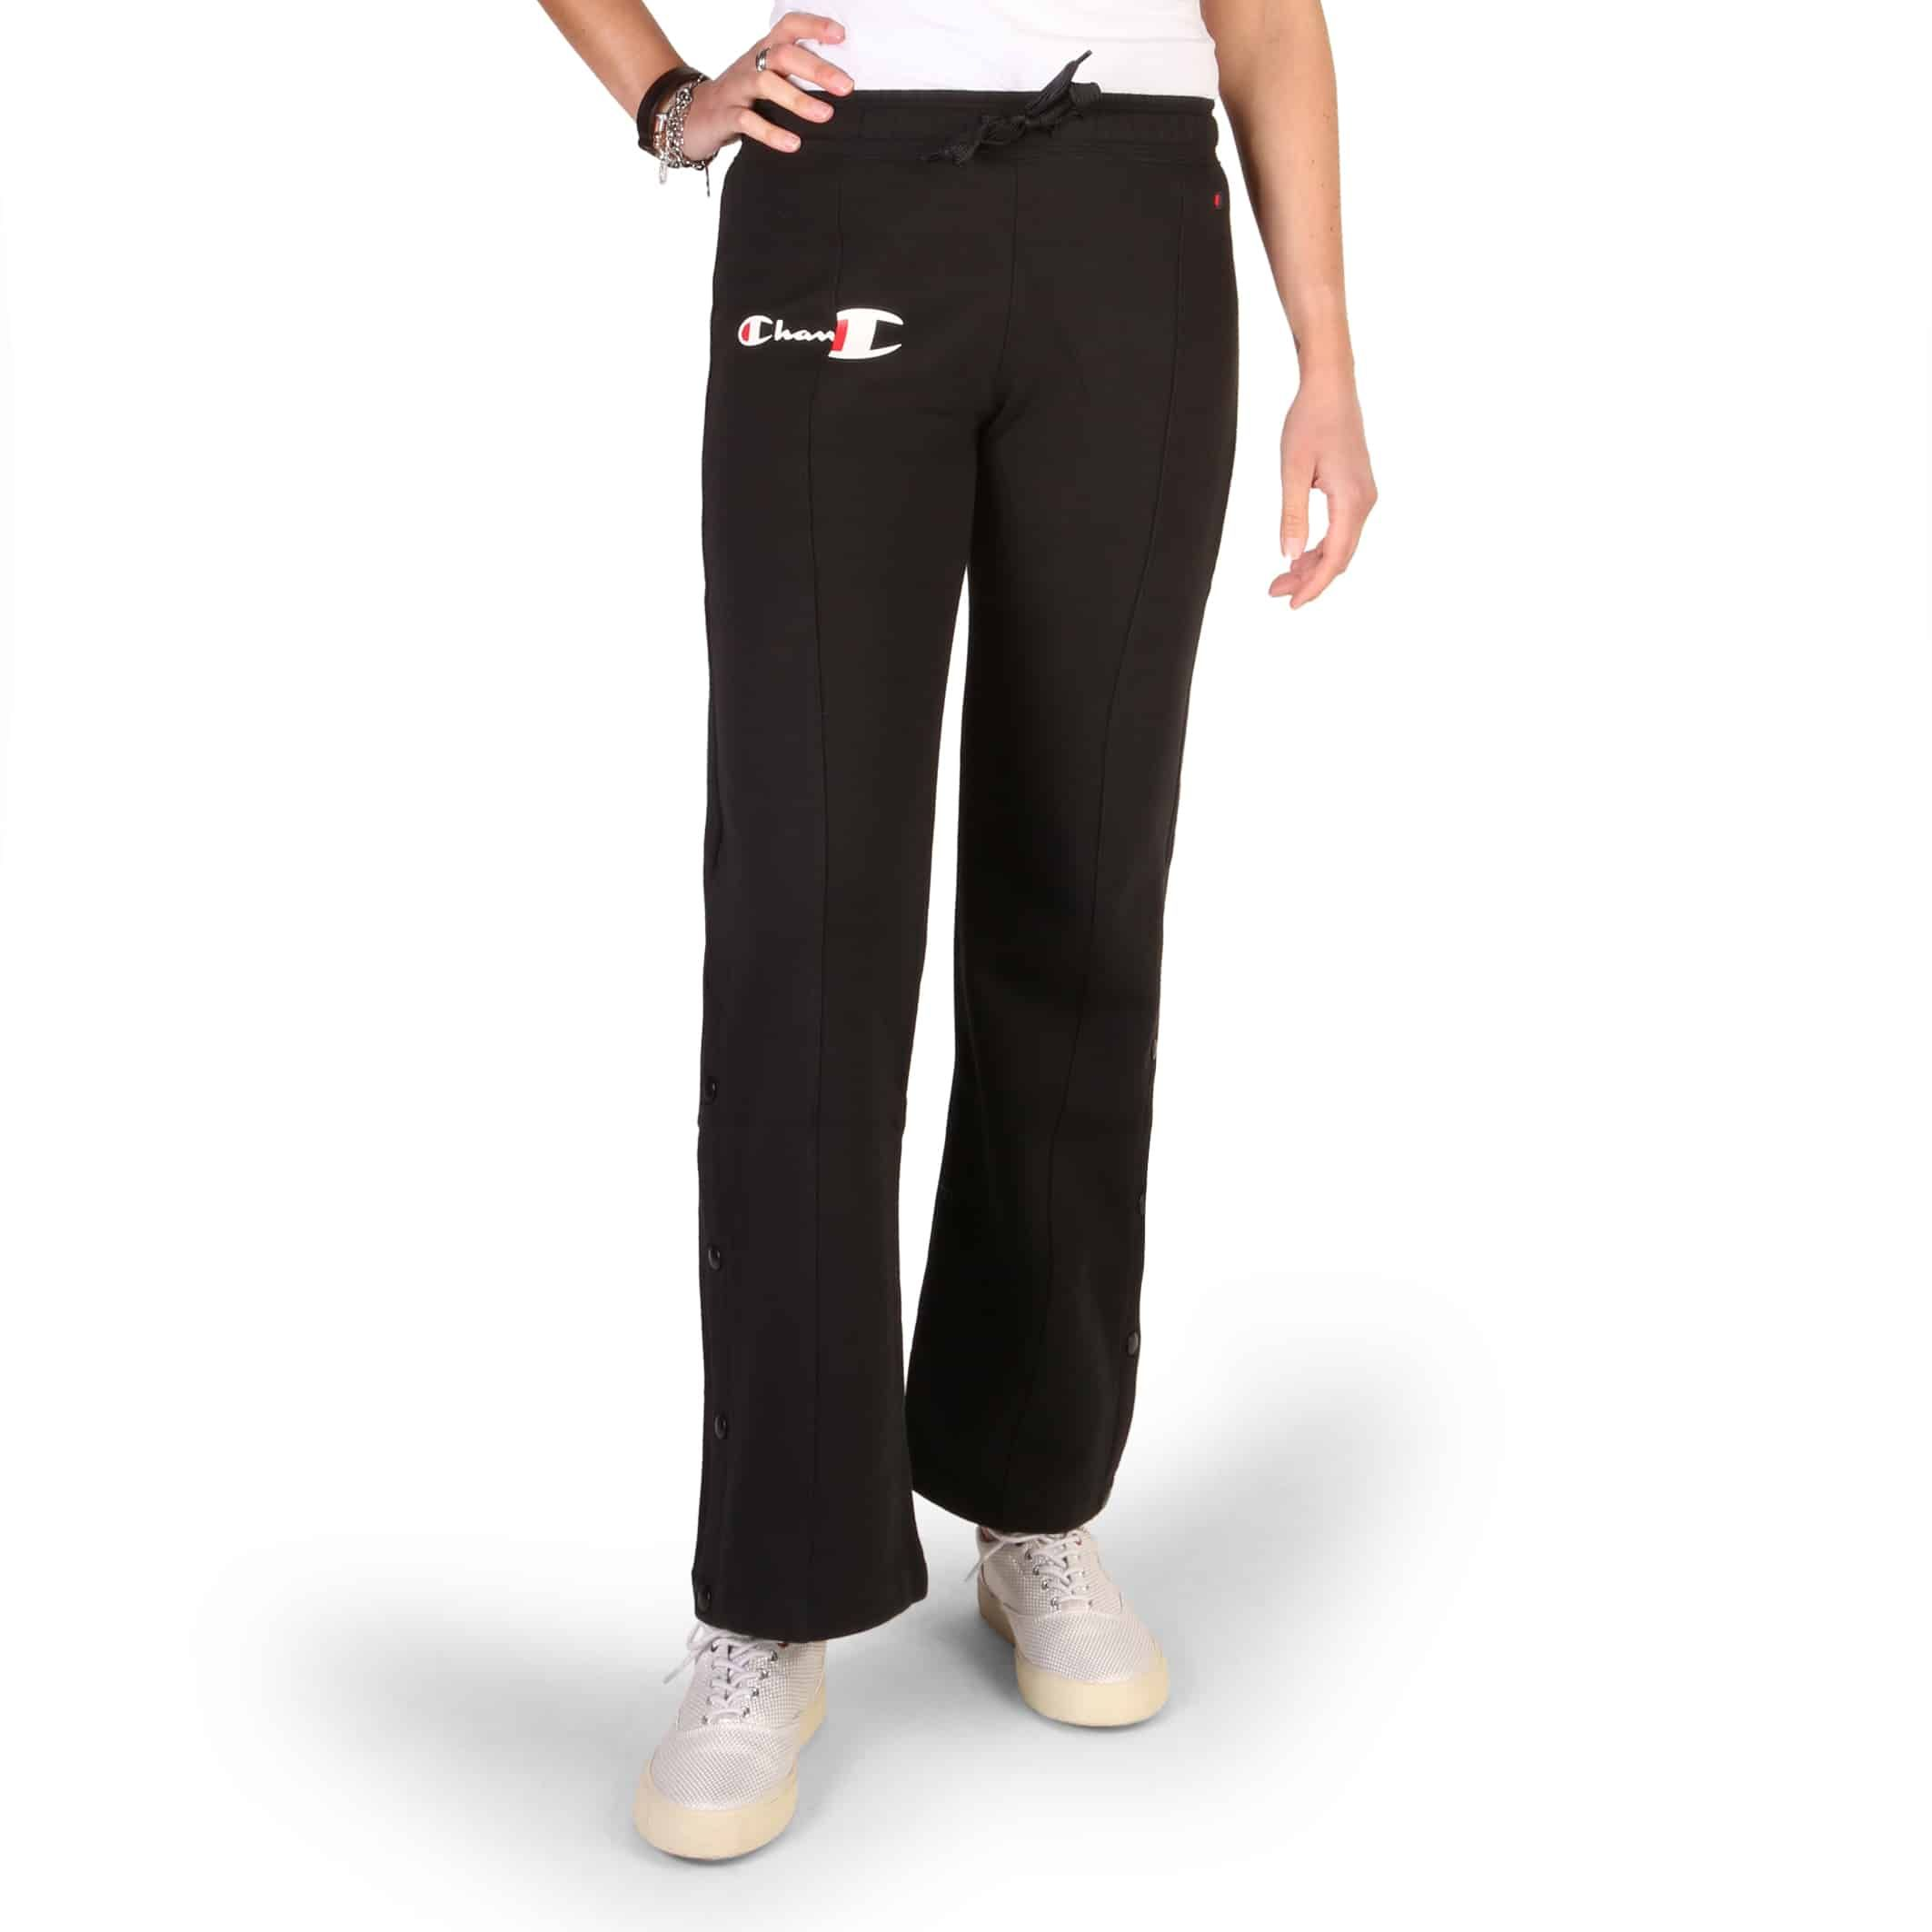 Pantalon de jogging Champion – 112149